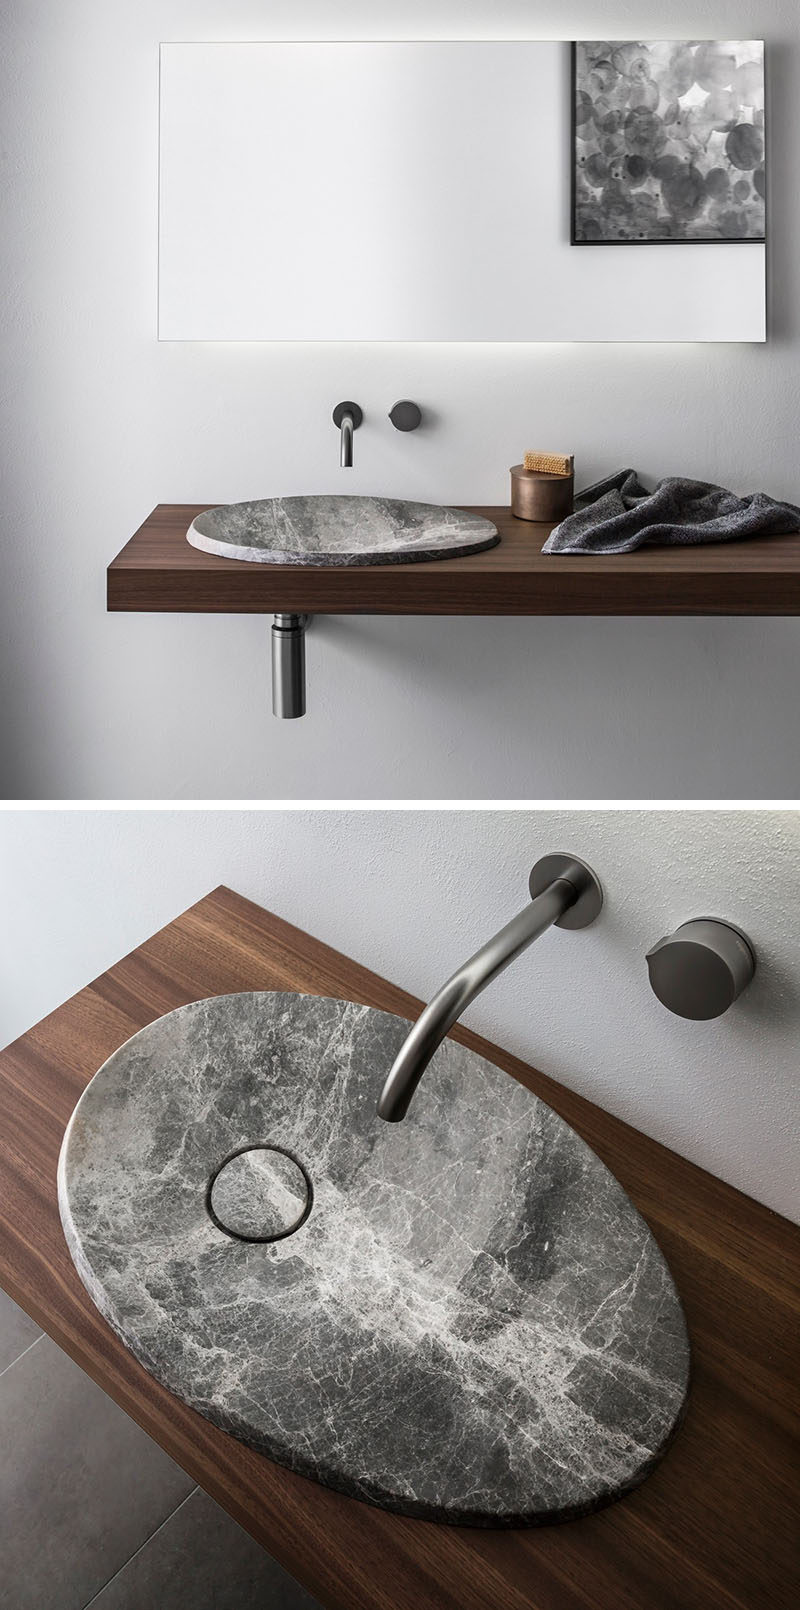 The Design Of This Natural Stone Sink Is Inspired By The Shape Of Craters Left From A Volcano